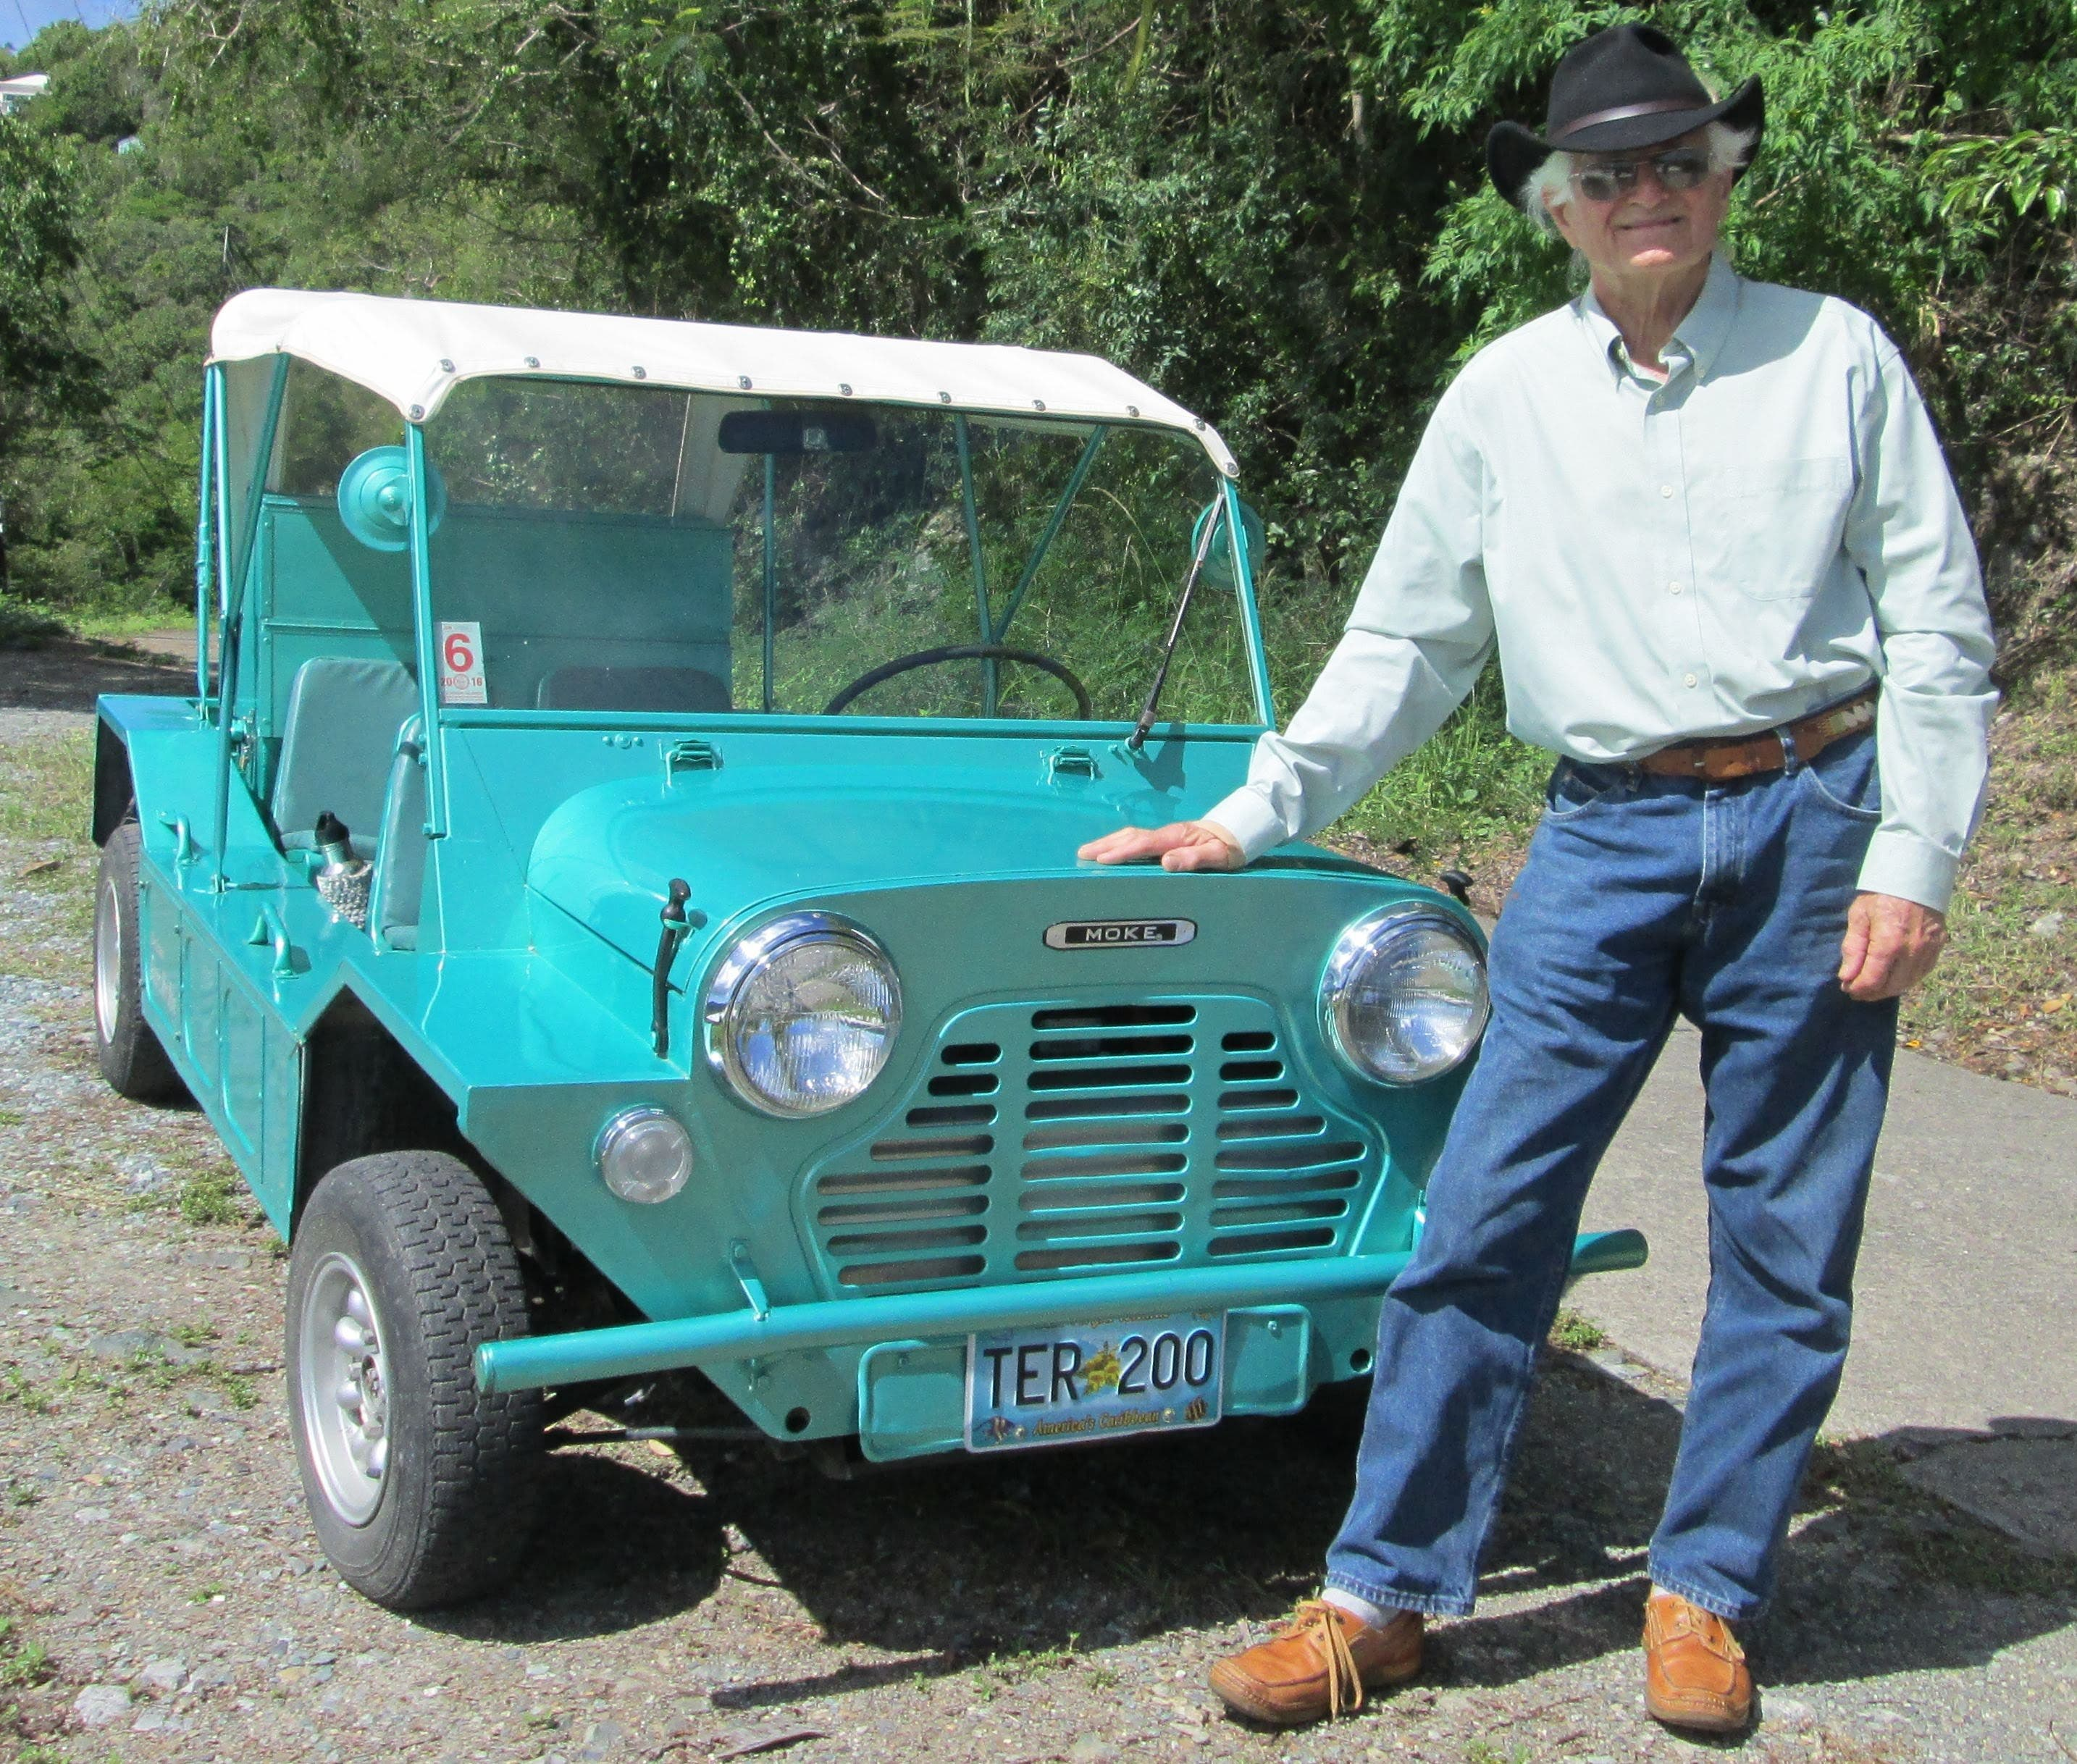 But Hey I Was Wondering One Thing Michael Bream From Ev West Said In The Video That He Would Deliver Mini Moke Personally Did